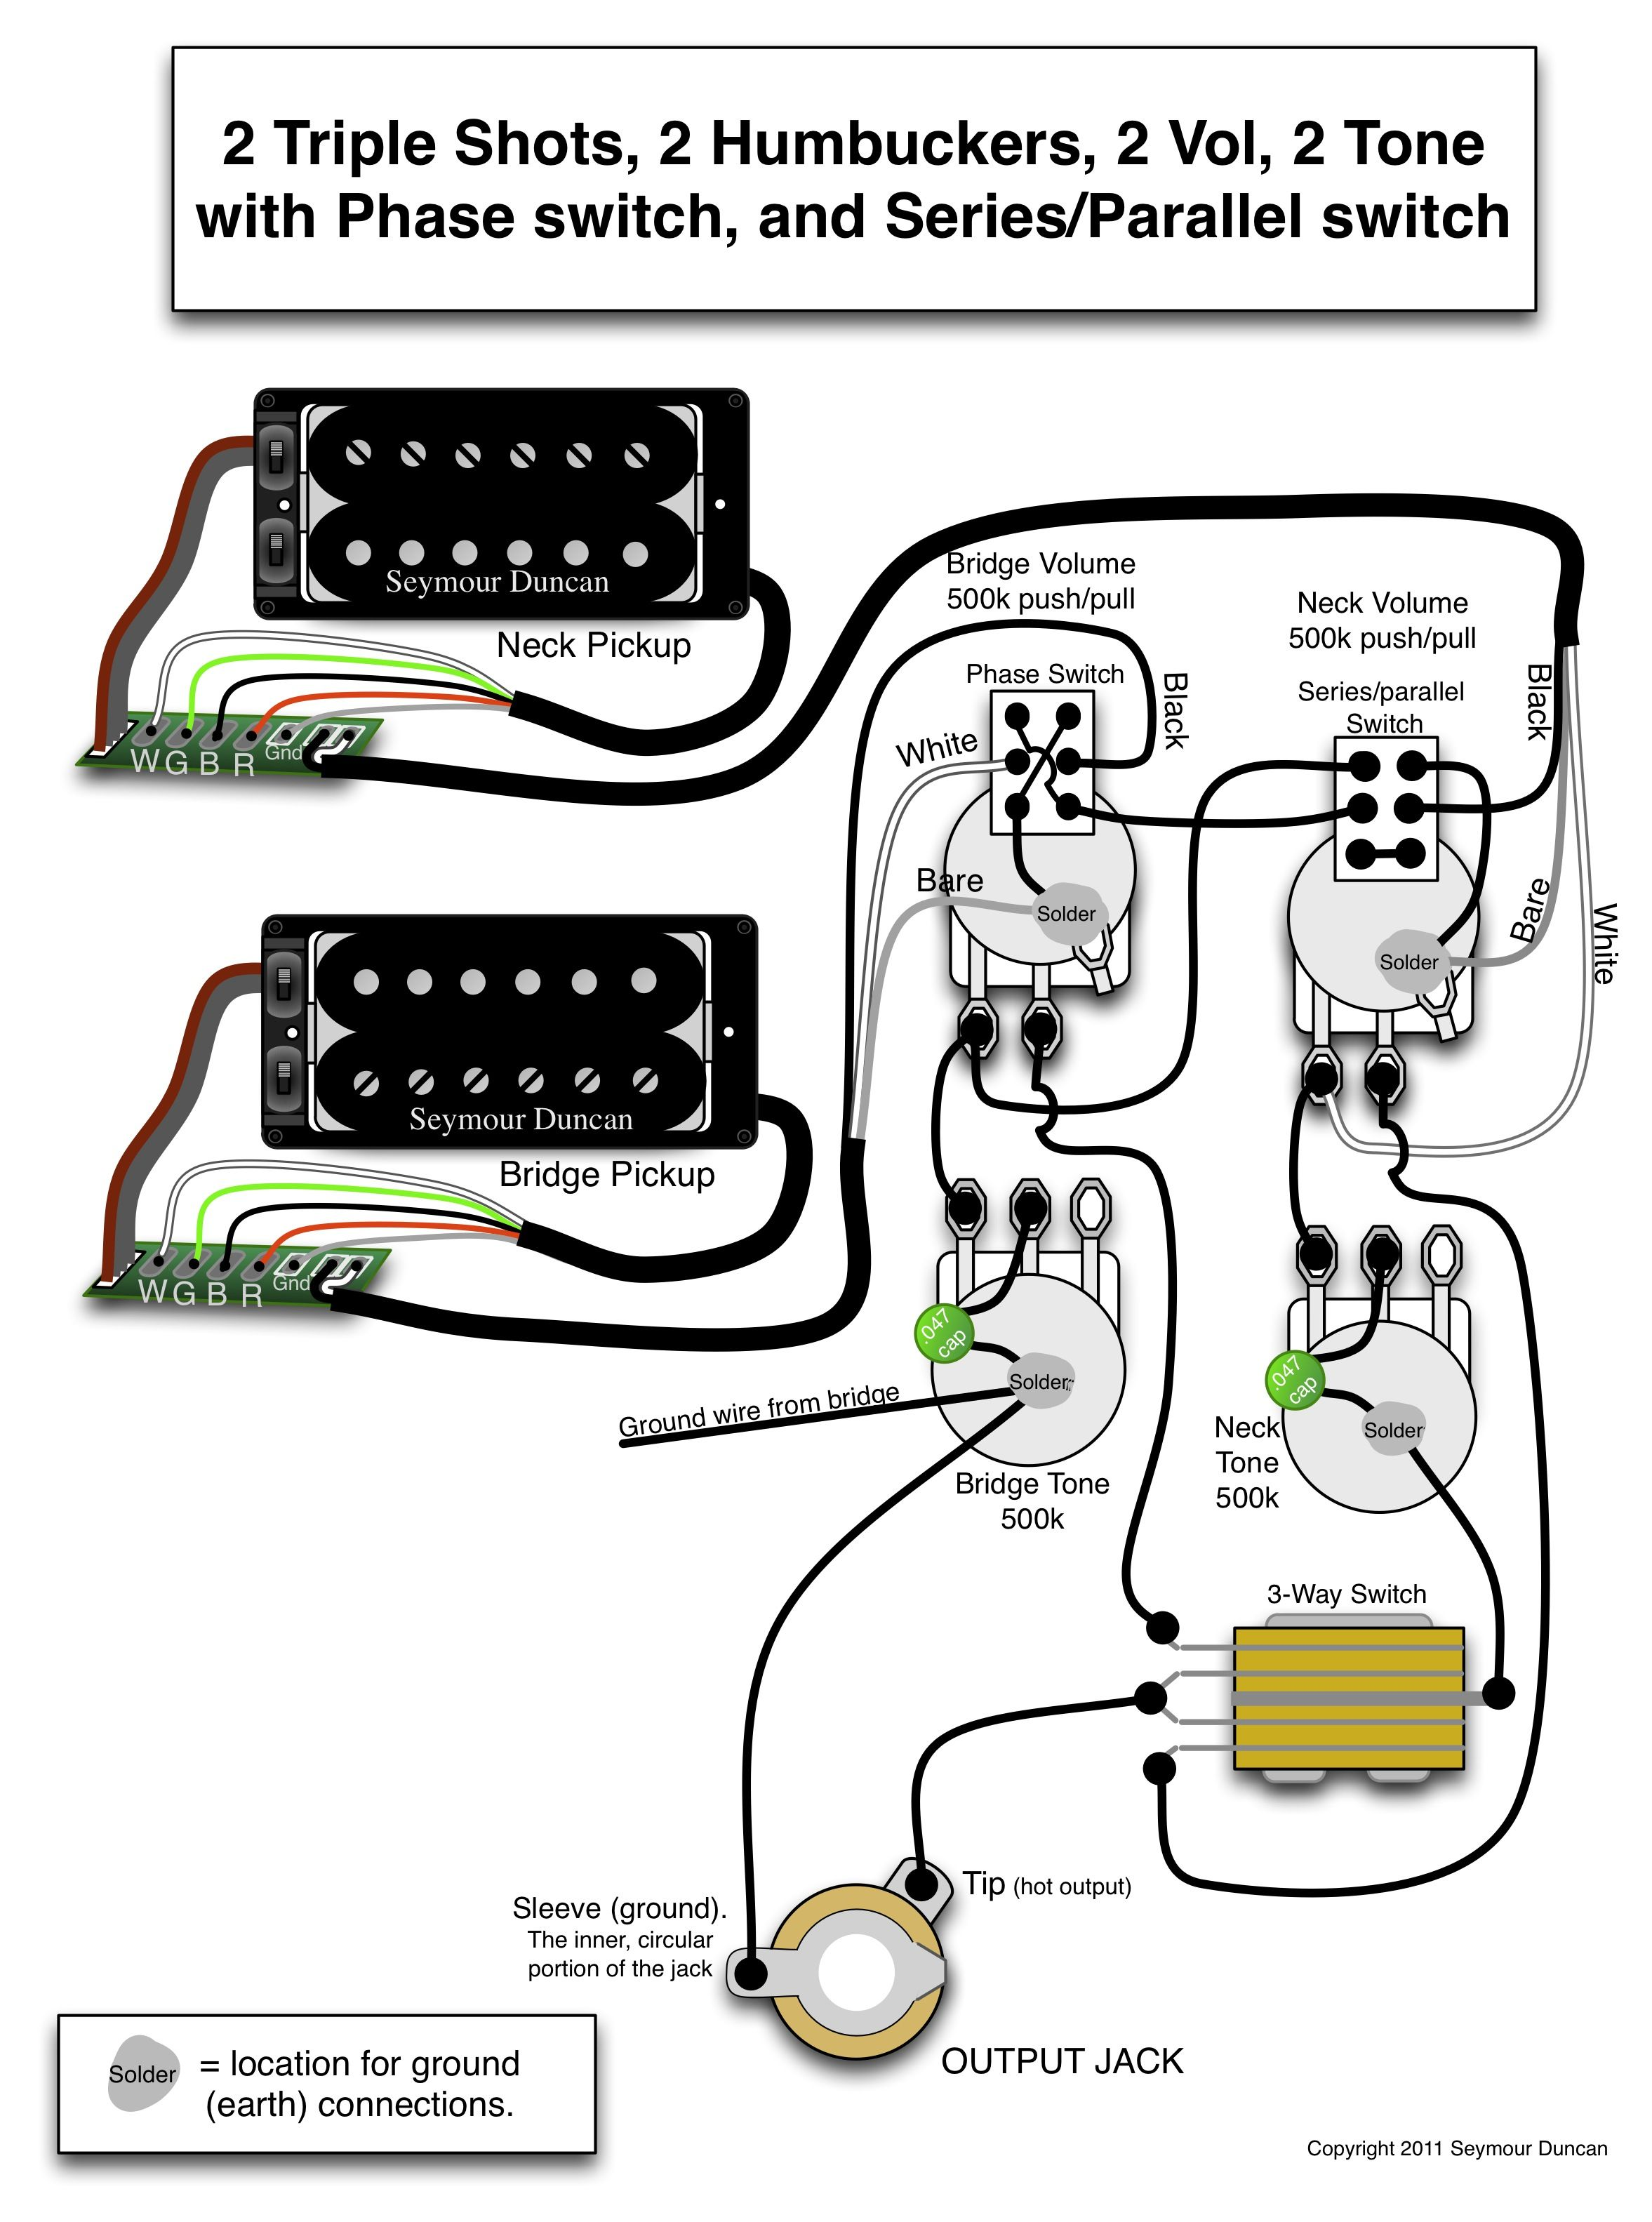 14dc4408abcf3c075a00cd280c1ea7ec seymour duncan wiring diagram 2 triple shots, 2 humbuckers, 2 5-Way Strat Switch Wiring Diagram at suagrazia.org